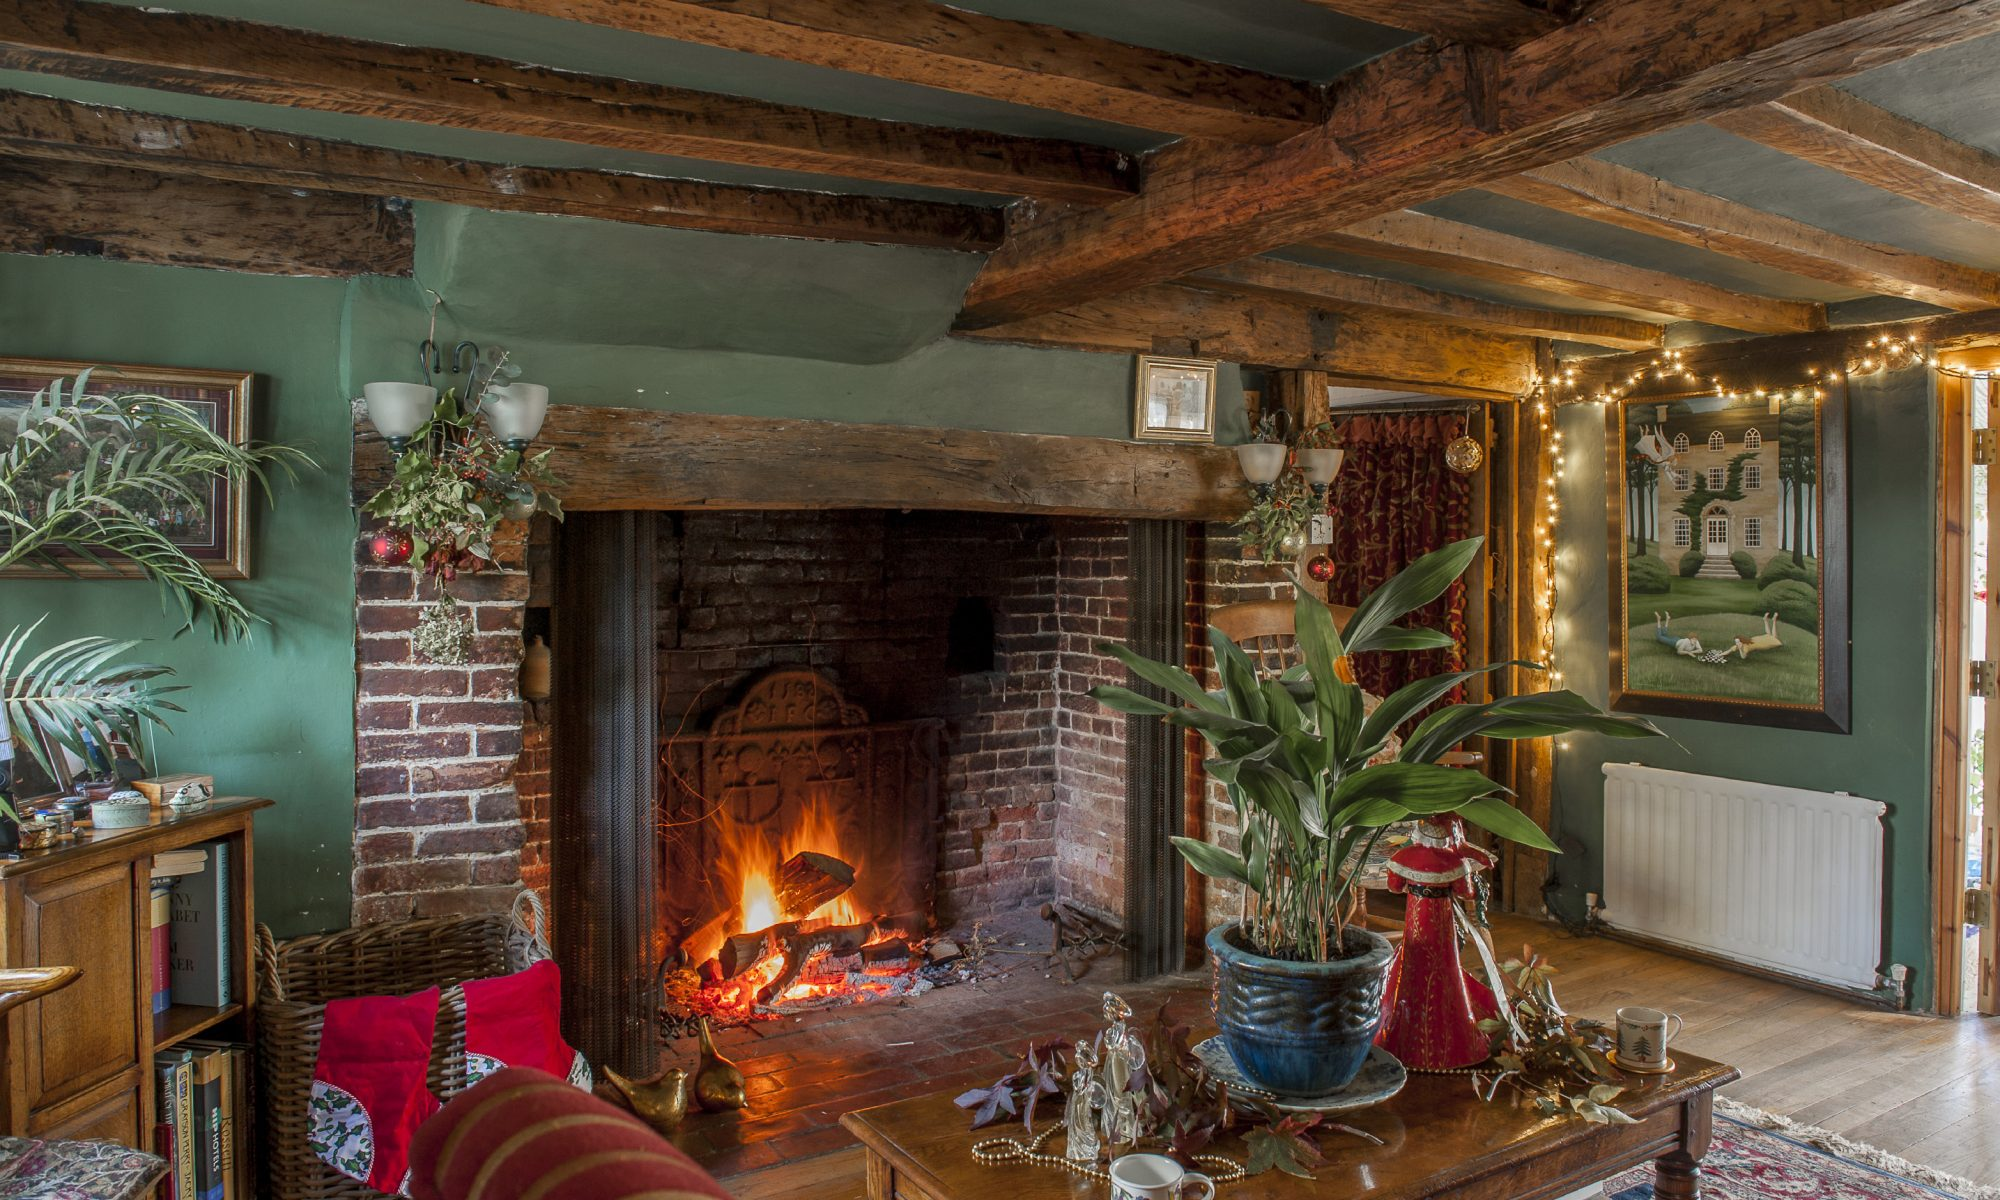 Jennifer Stuart-Smith relishes the snugness of the perfect Christmas house